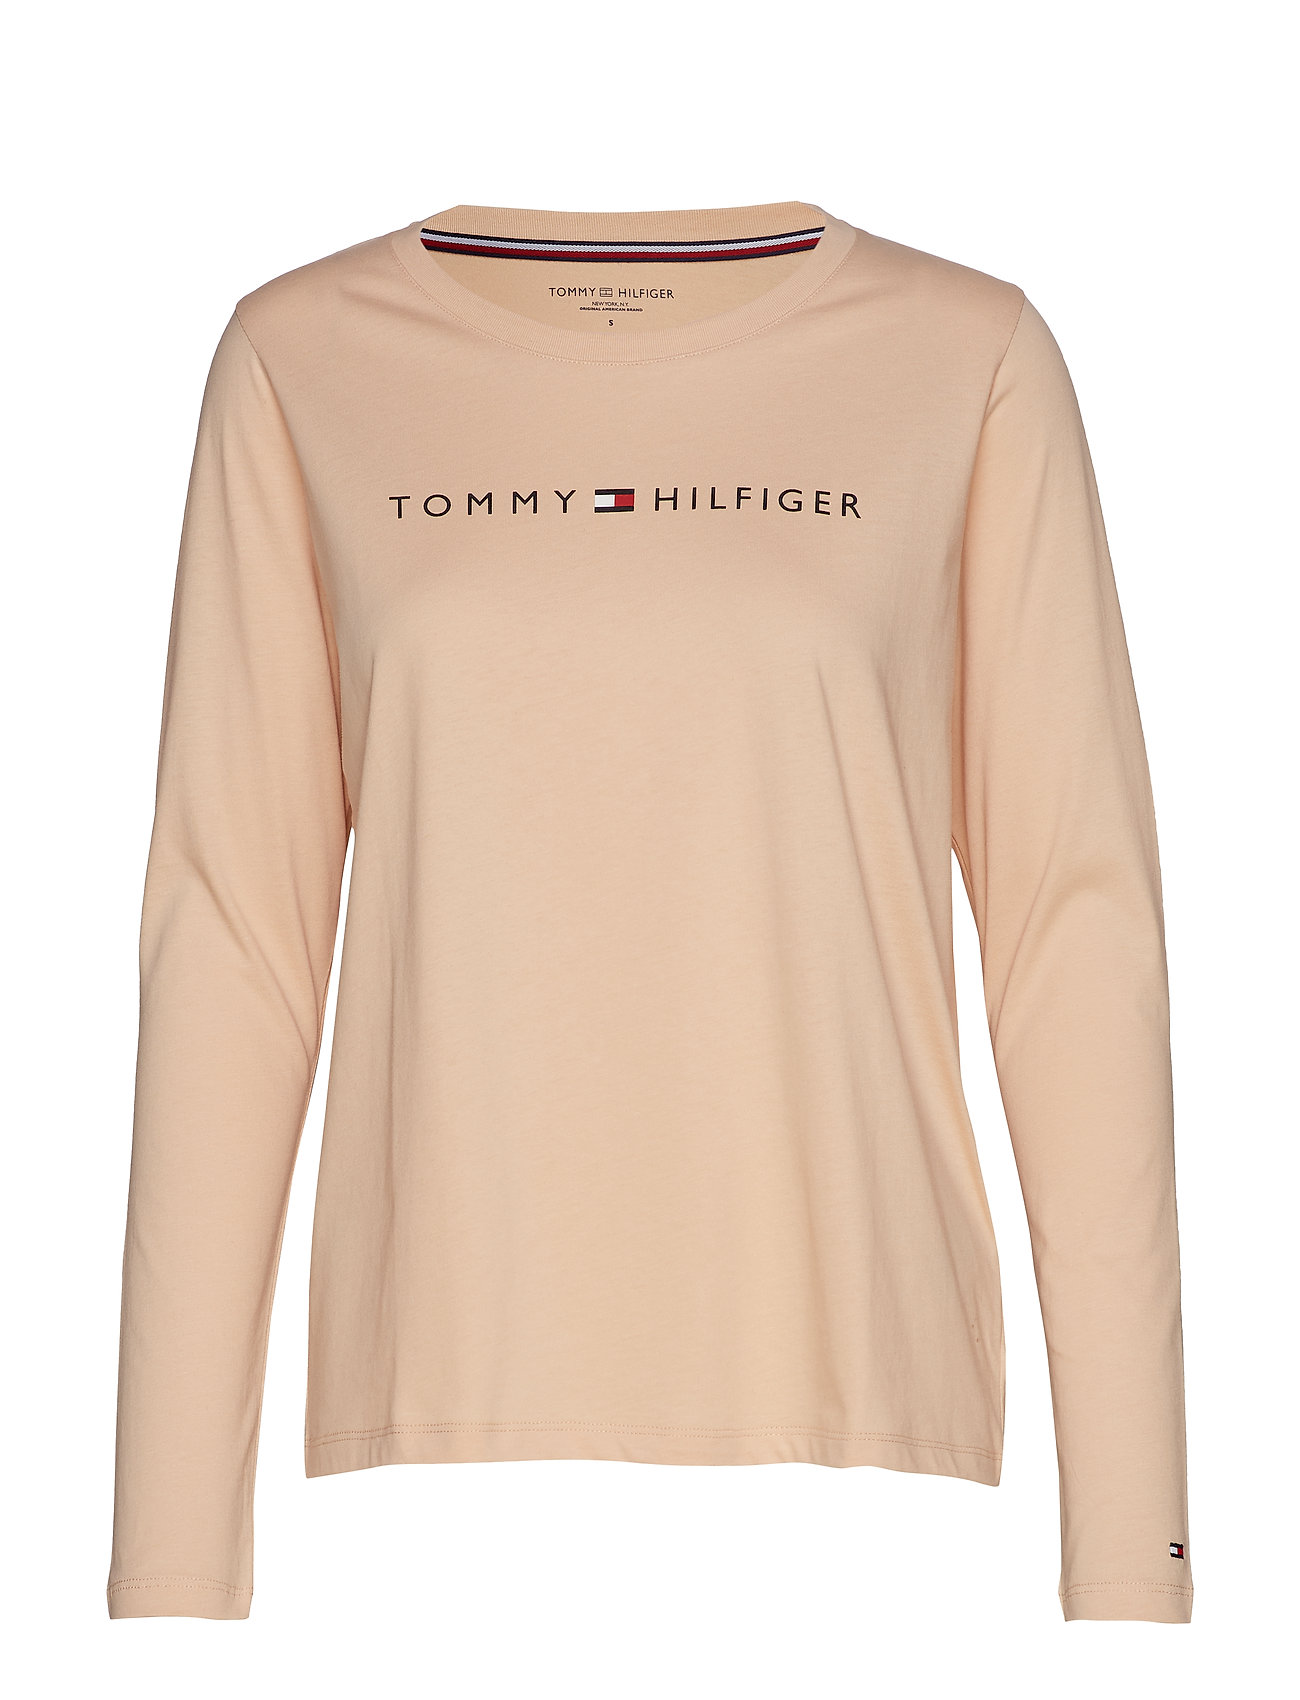 Tommy Hilfiger CN TEE LS LOGO - TOASTED ALMOND